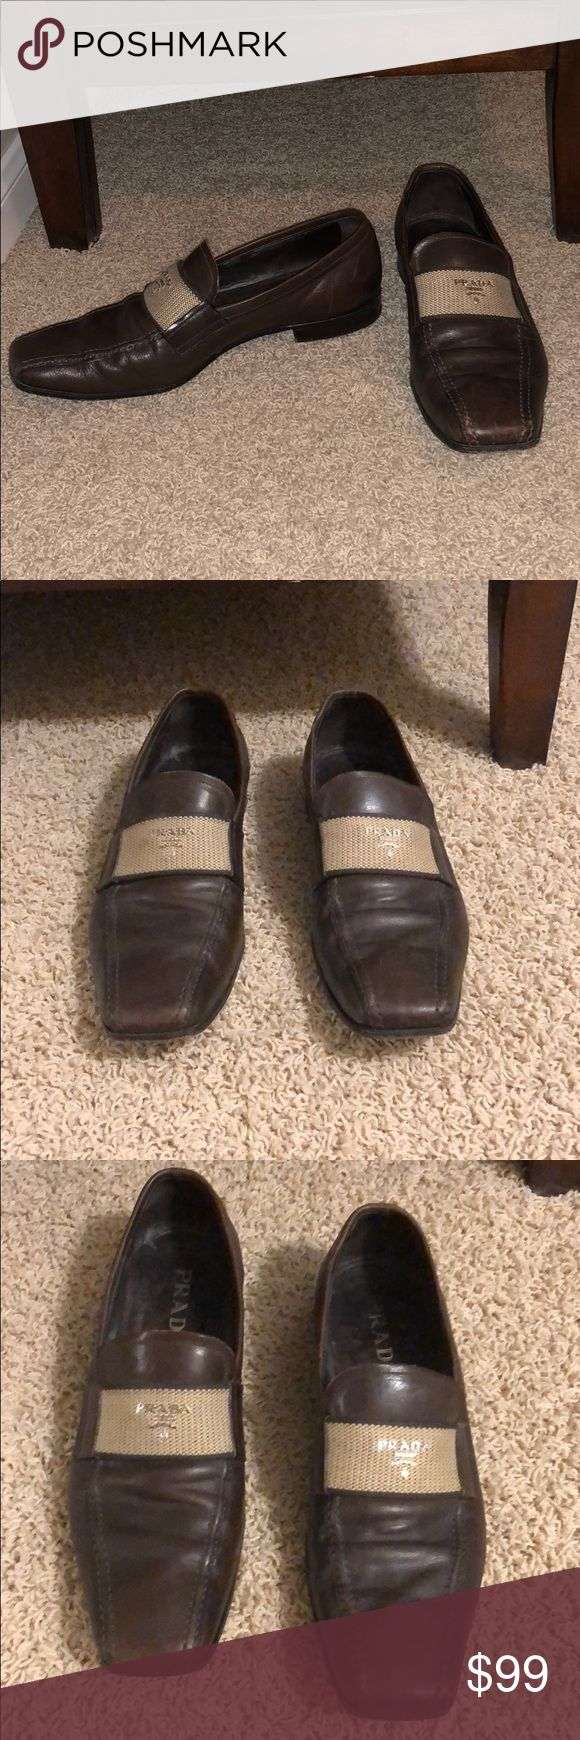 Prada men's brown loafers size 9 Good condition. Prada Shoes Loafers & Slip-Ons